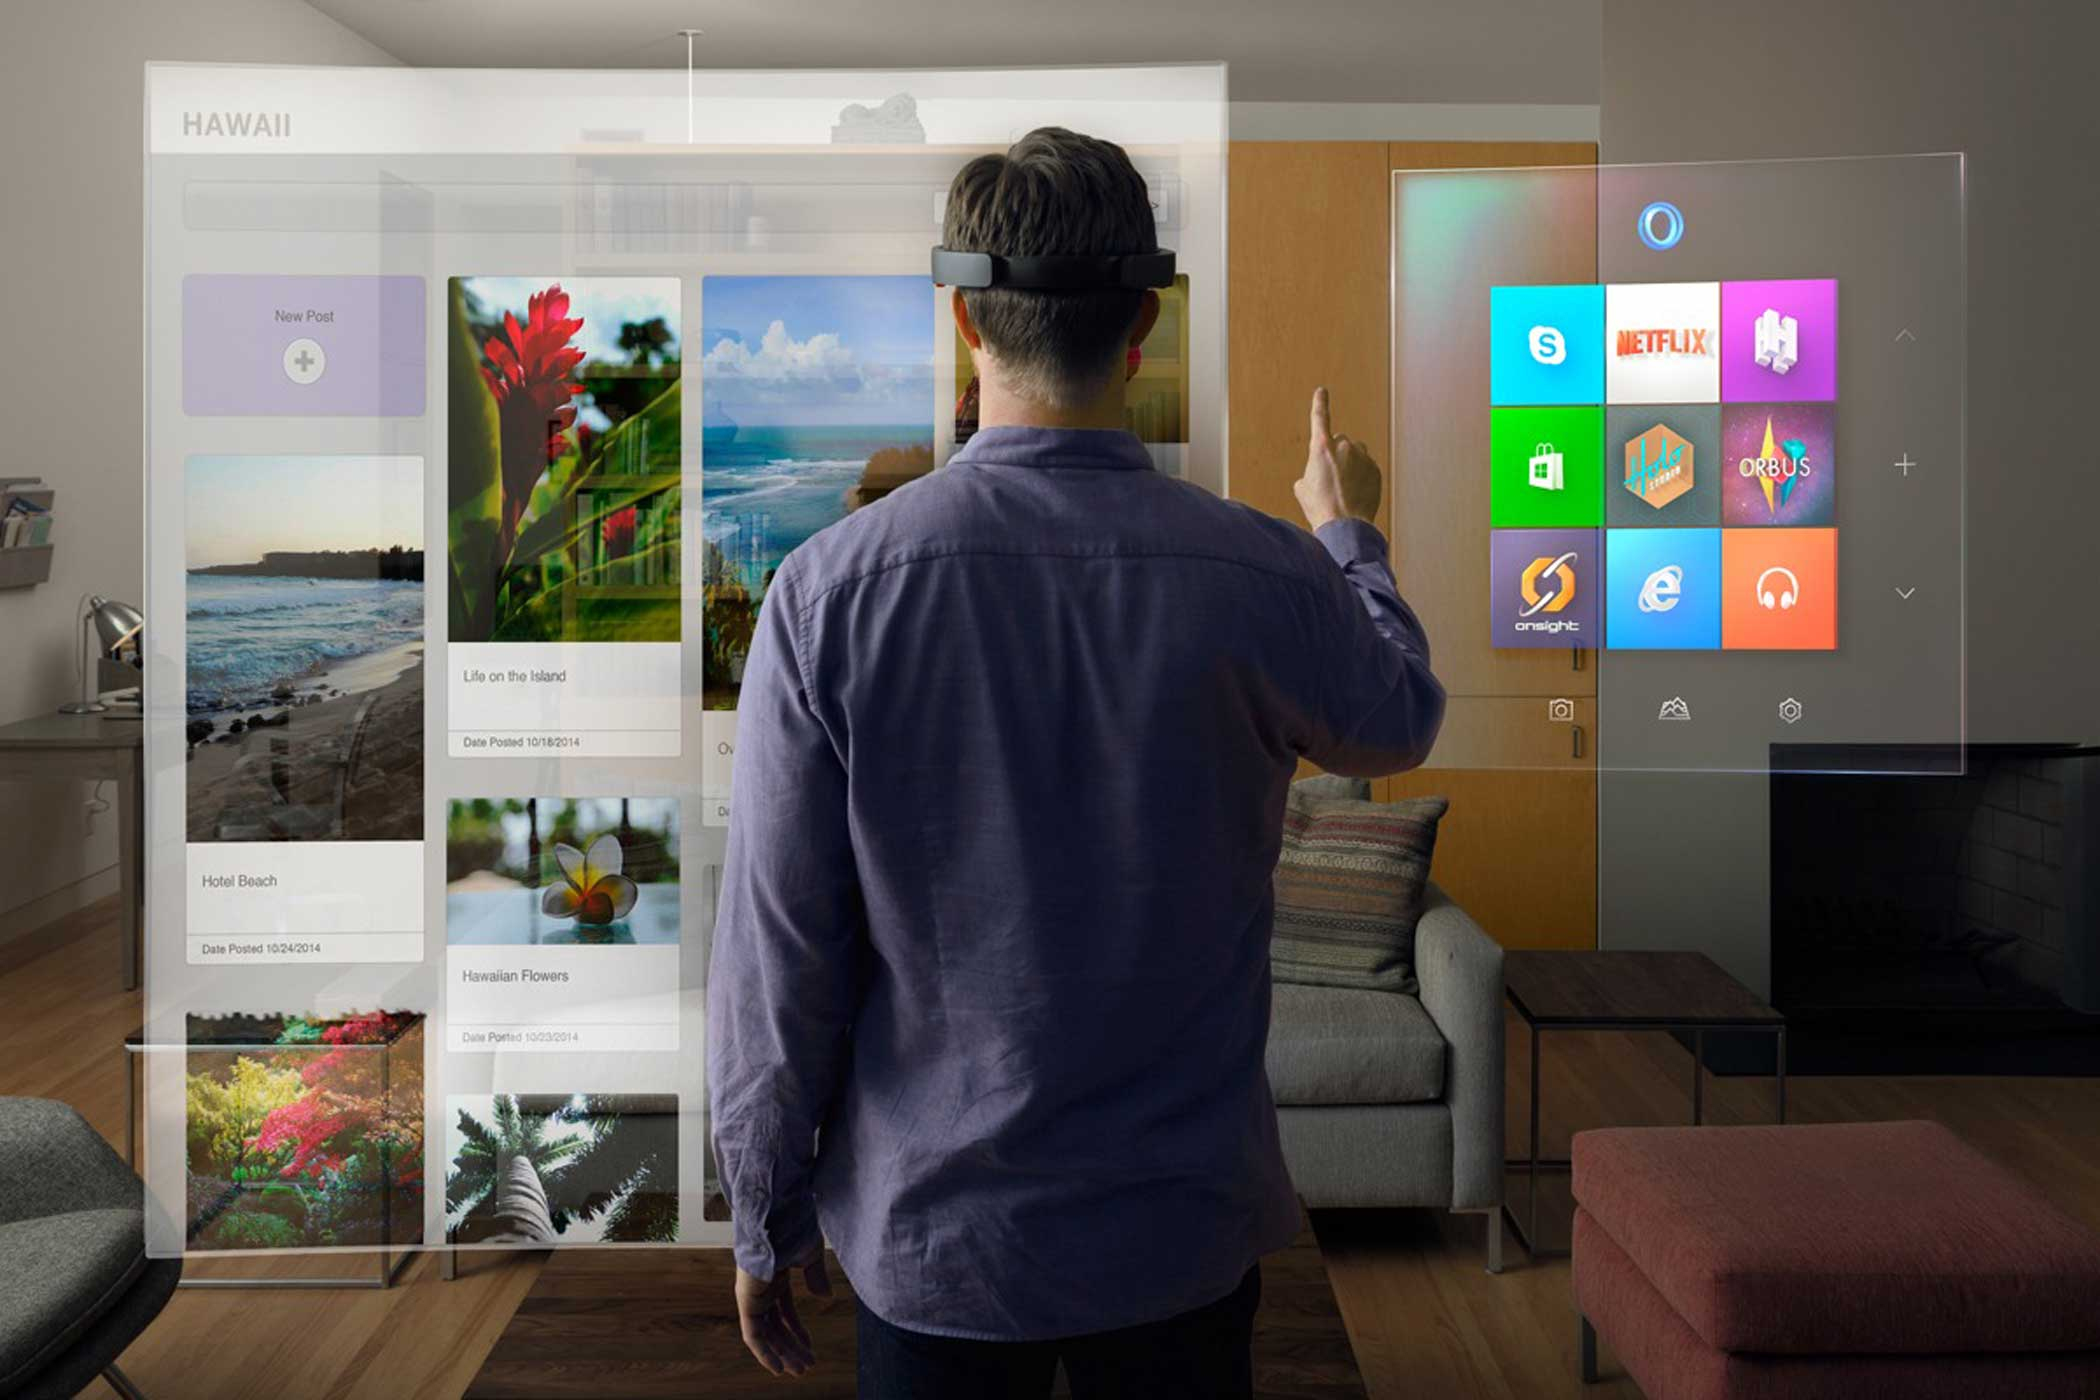 Microsoft Hololens game view